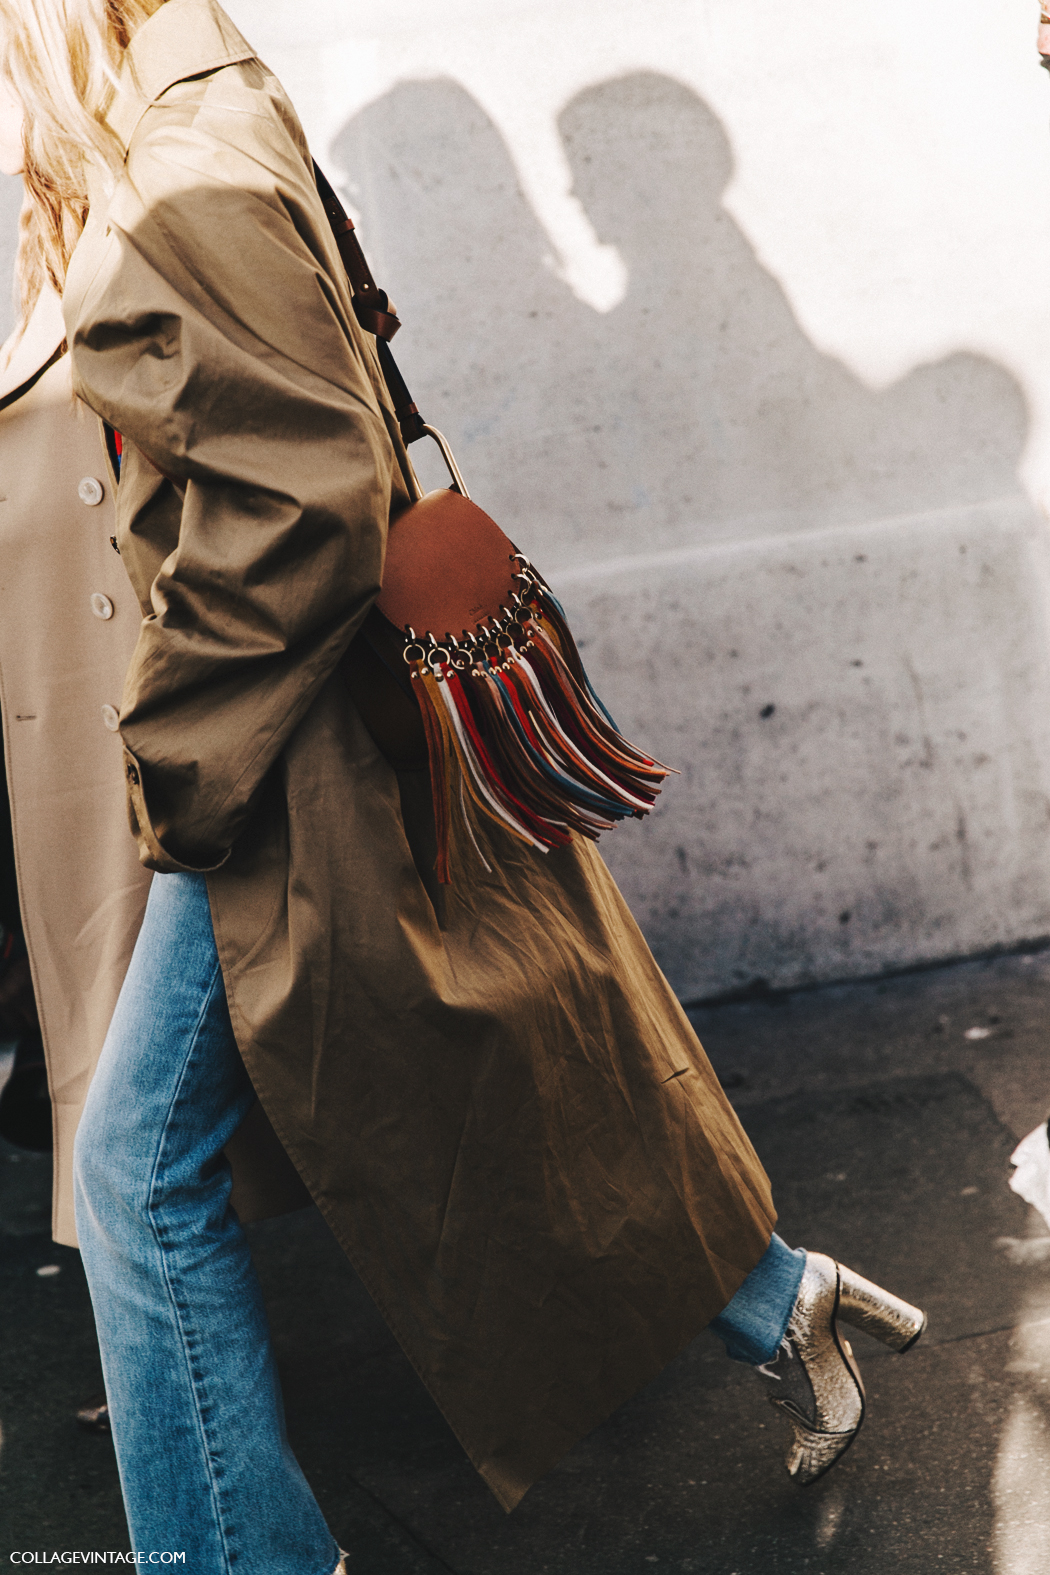 PFW-Paris_Fashion_Week_Fall_2016-Street_Style-Collage_Vintage-Pernille_Teisbaek-Vetements-Trench-Jeans-Chloe_Bag-2